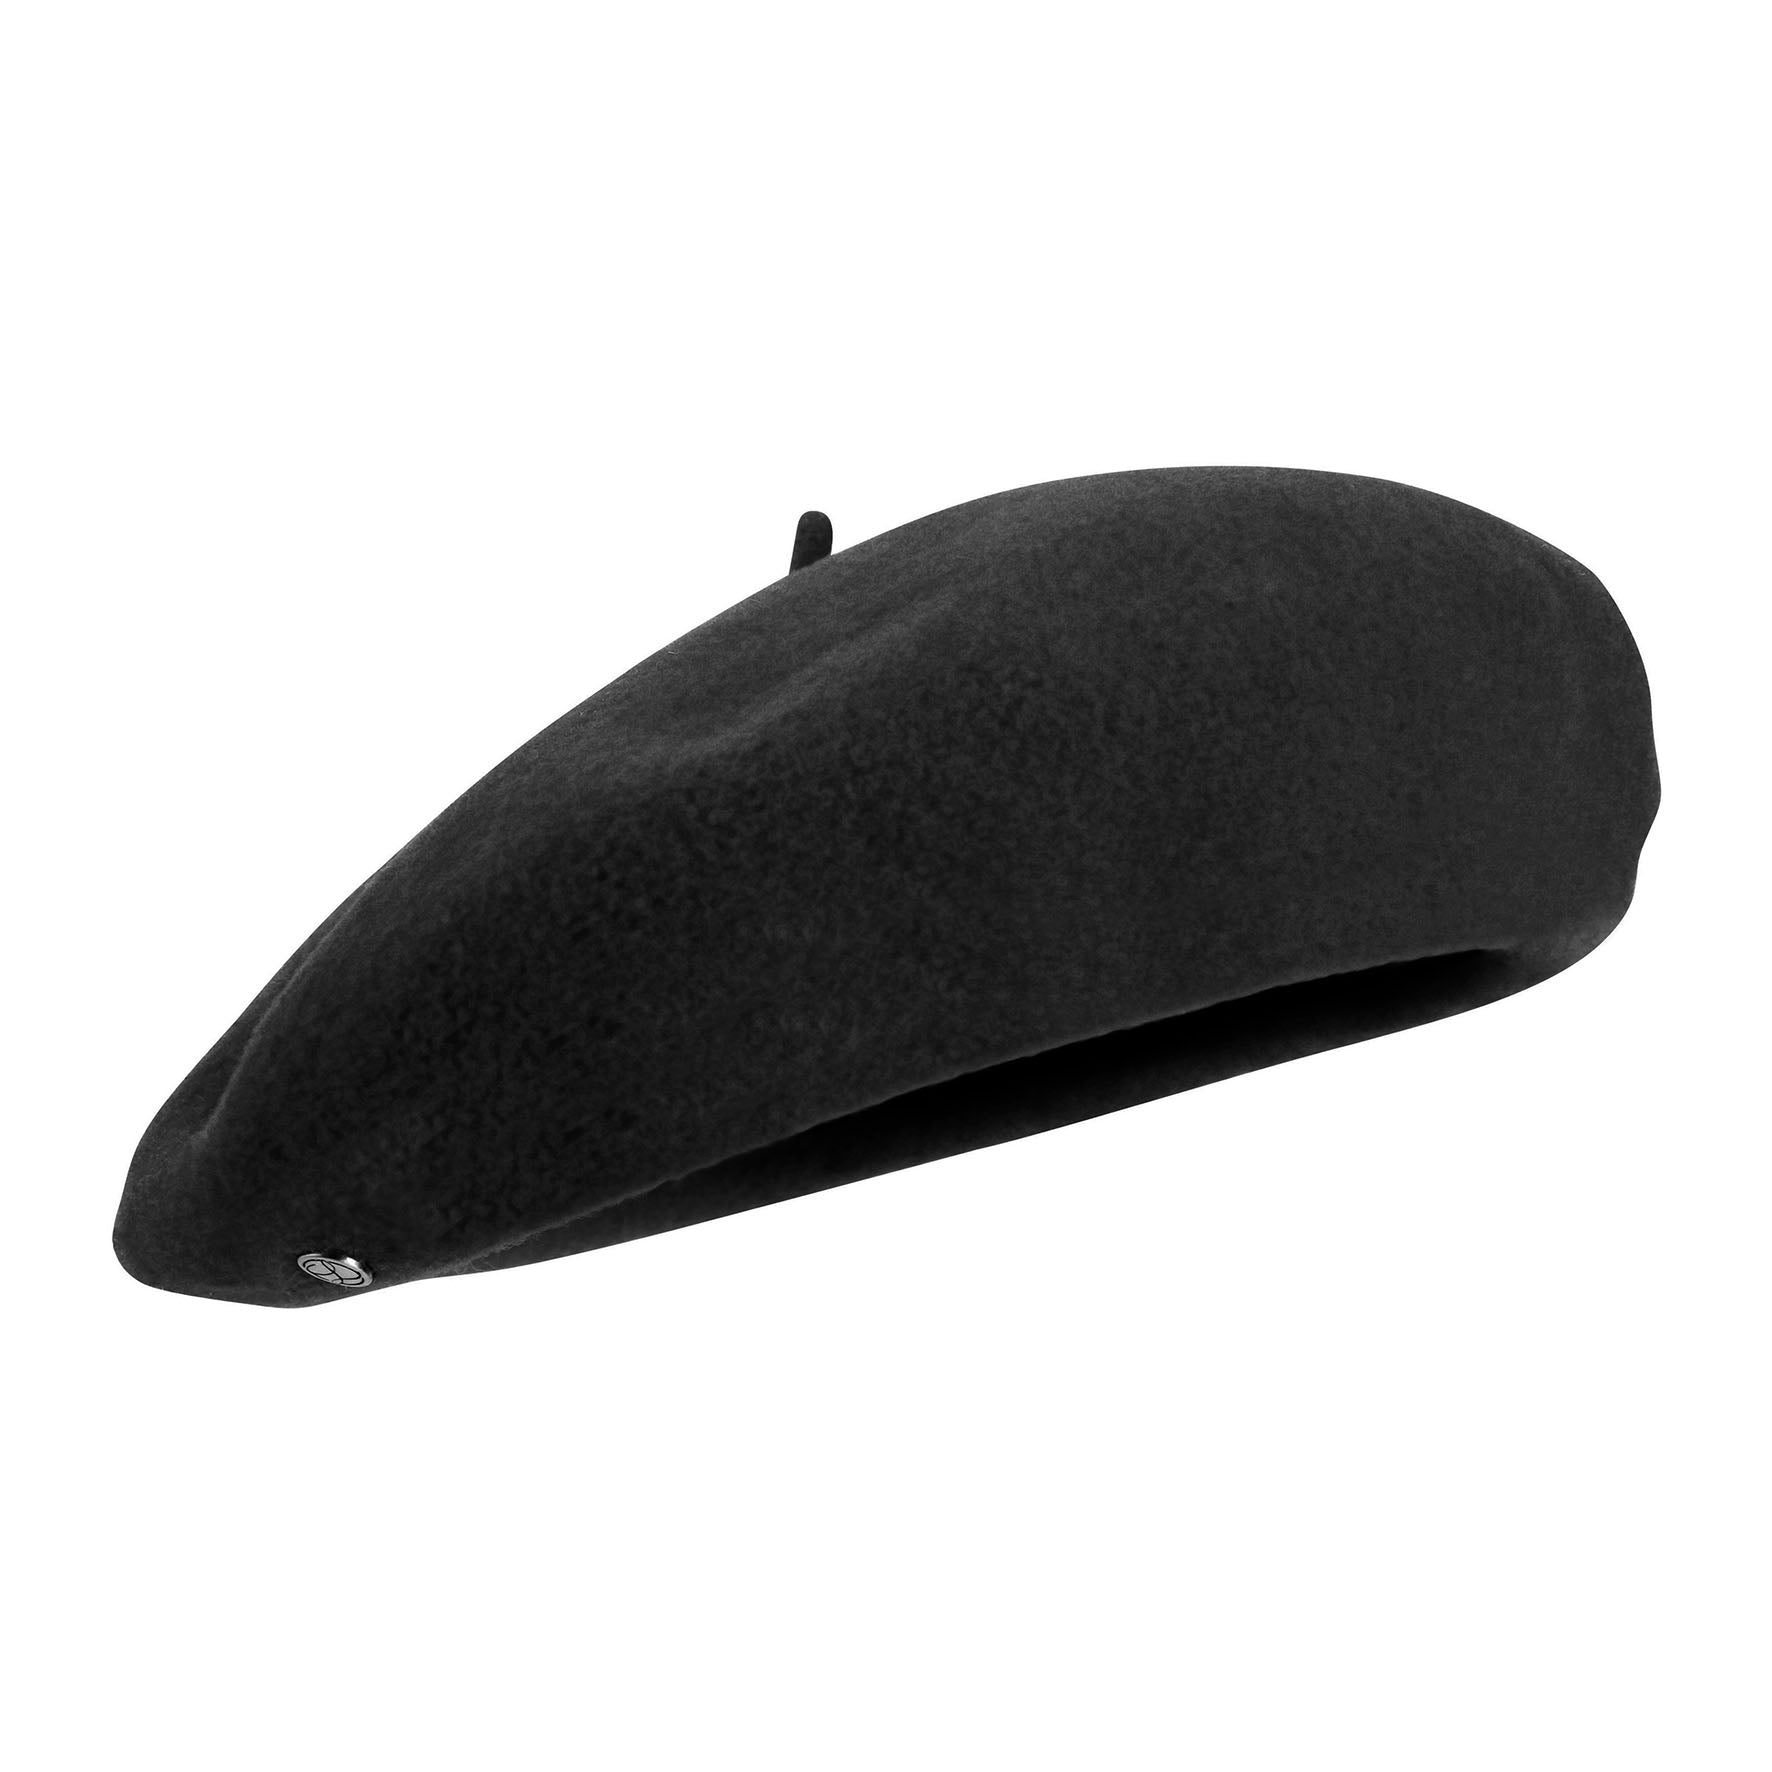 Heritage by Laulhere | Mens French Beret | Merino Wool | buy now at The Cashmere Choice London